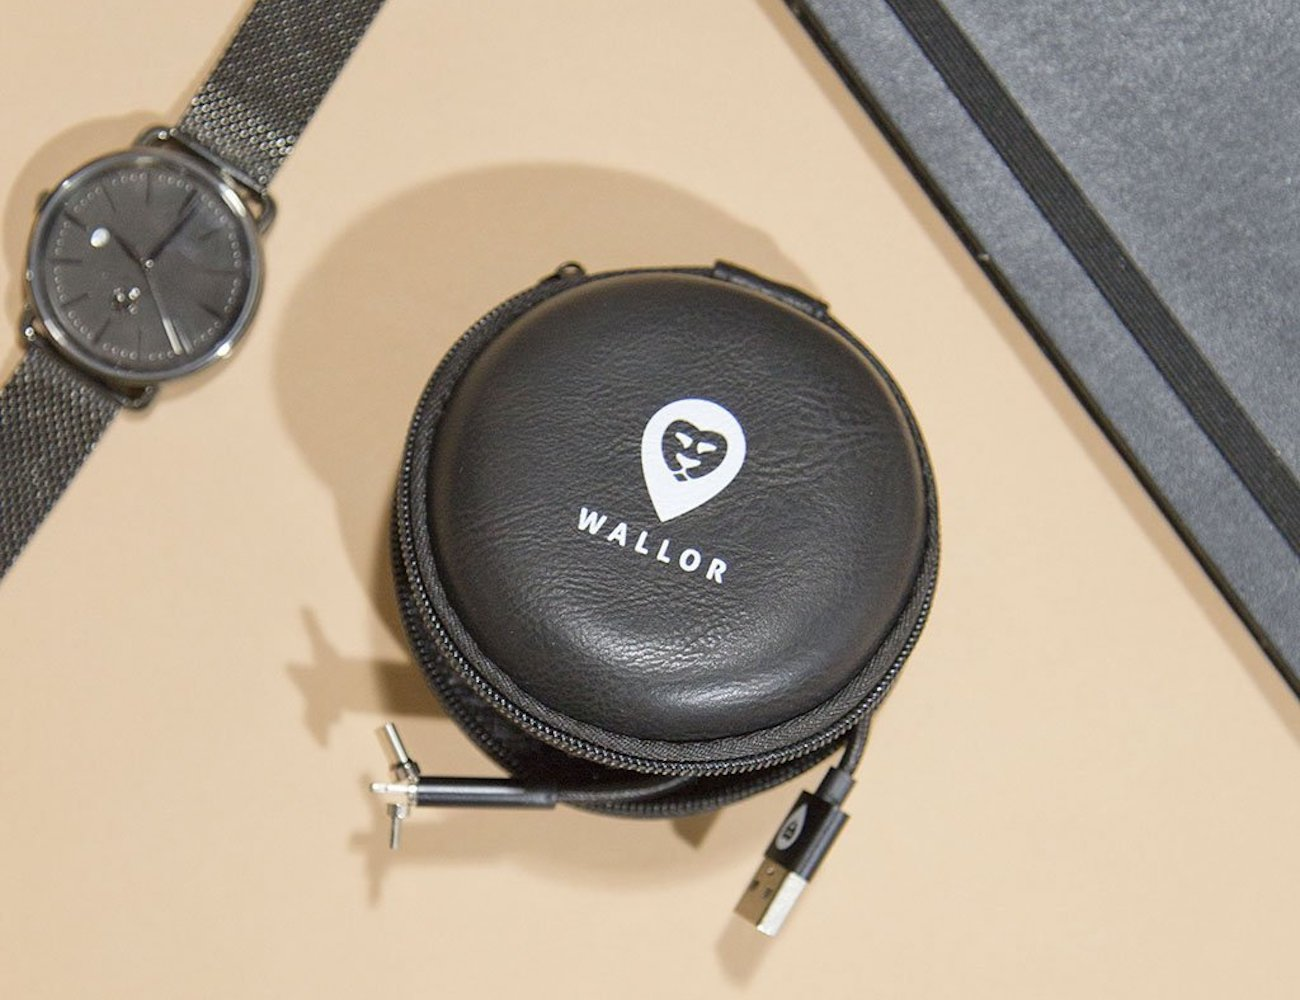 Wallor Travel Cable Case